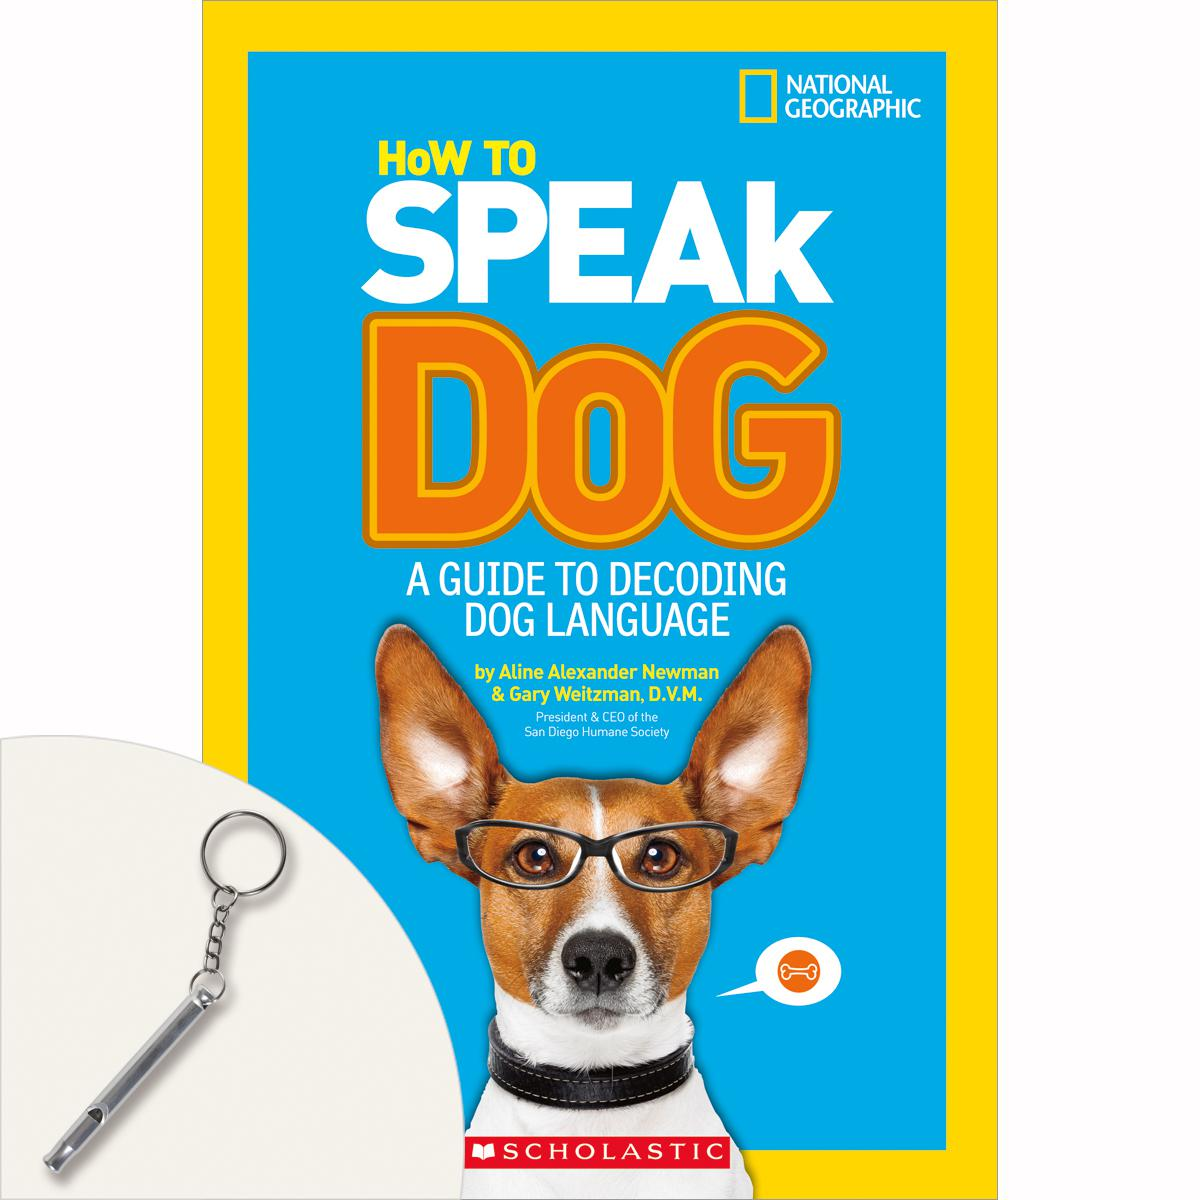 How to Speak Dog Pack